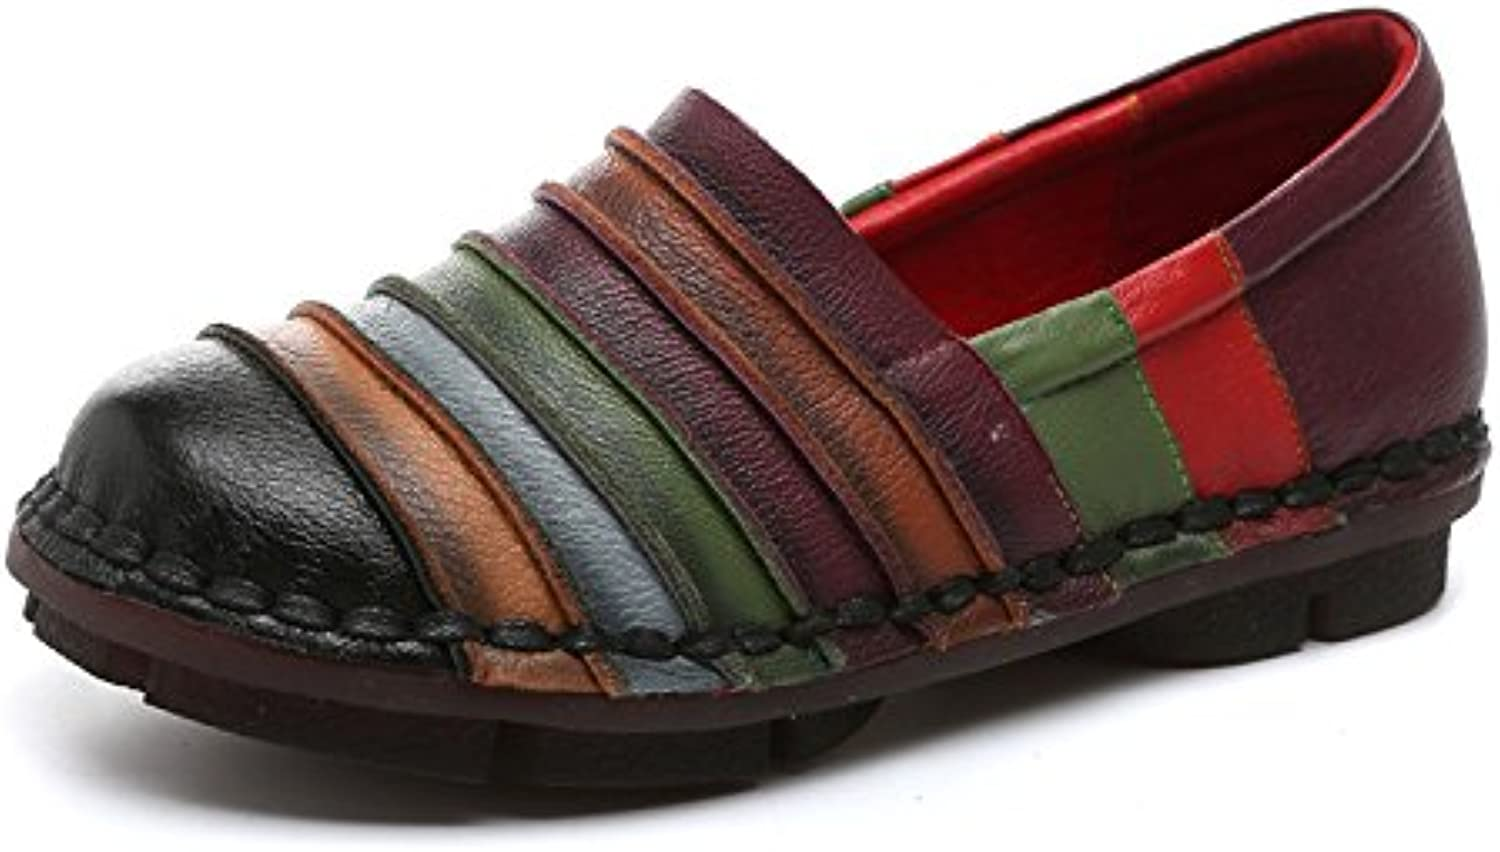 Rainbow shoes for Women colorful Leather Flat Comfortable Slip on Loafers (color   Black, Size   CA 8)